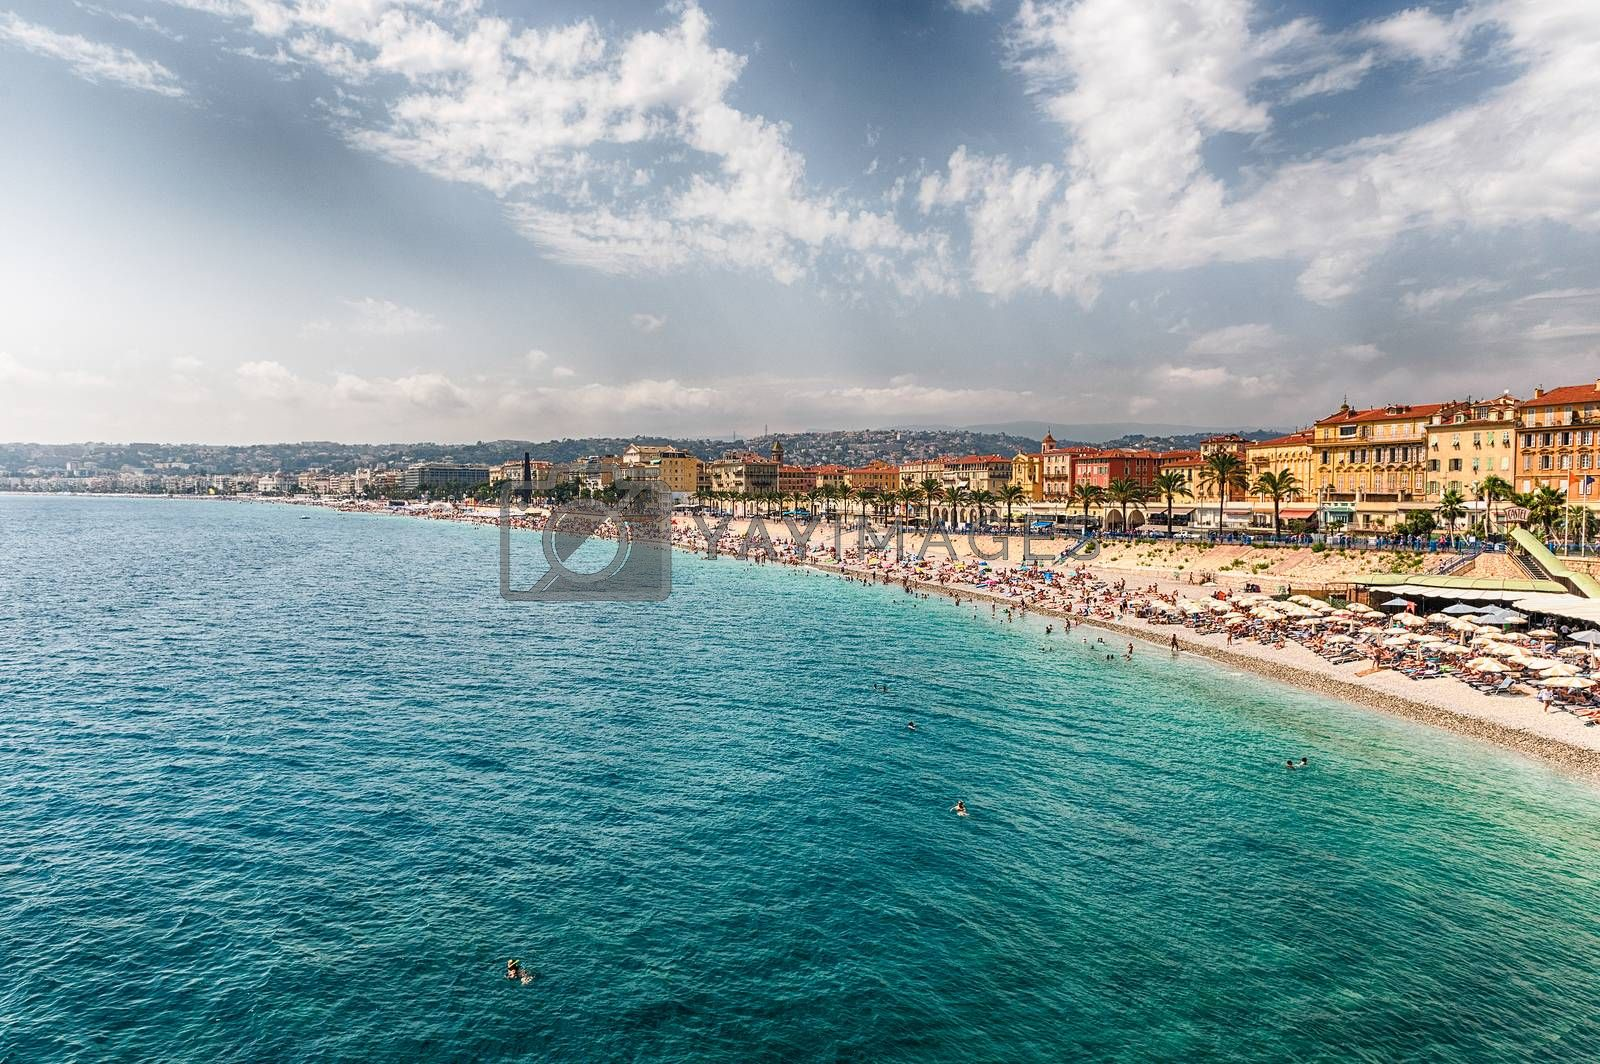 Scenic aerial view of the waterfront and the Promenade des Anglais from the Castle Hill in Nice, Cote d'Azur, France